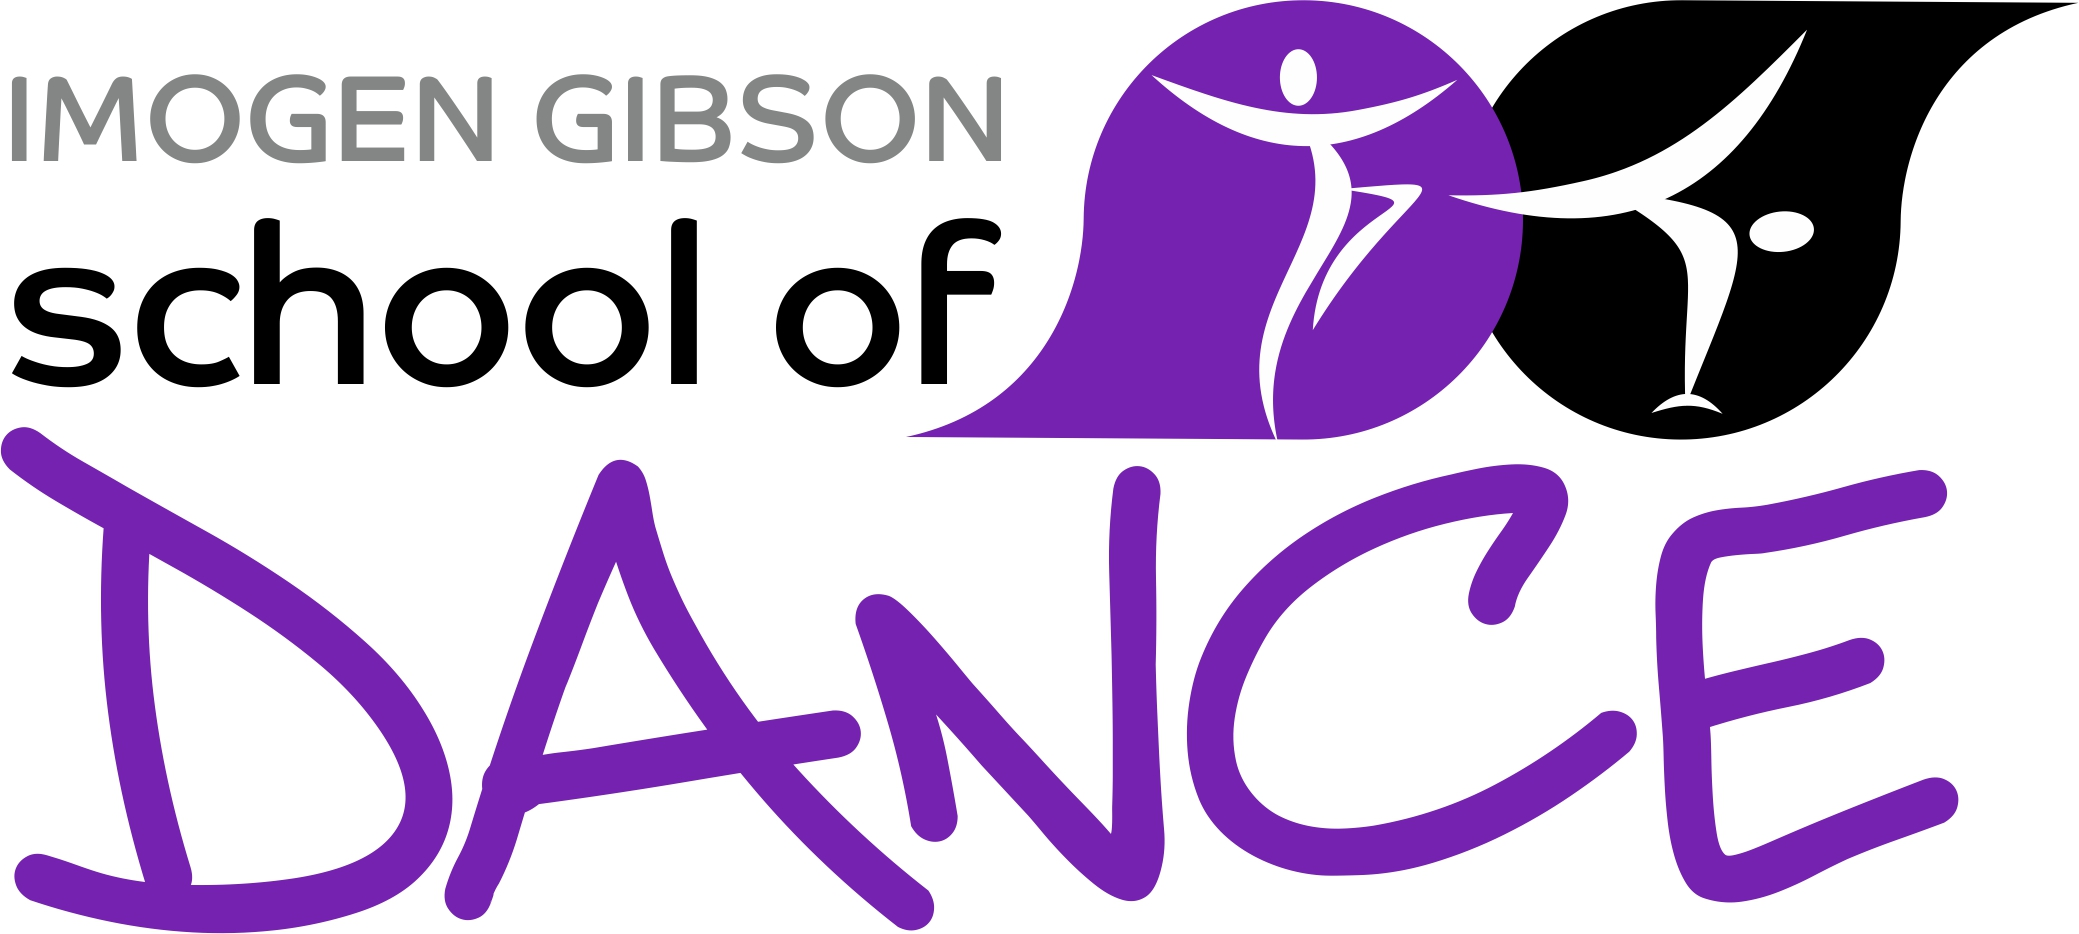 Imogen Gibson School of Dance logo